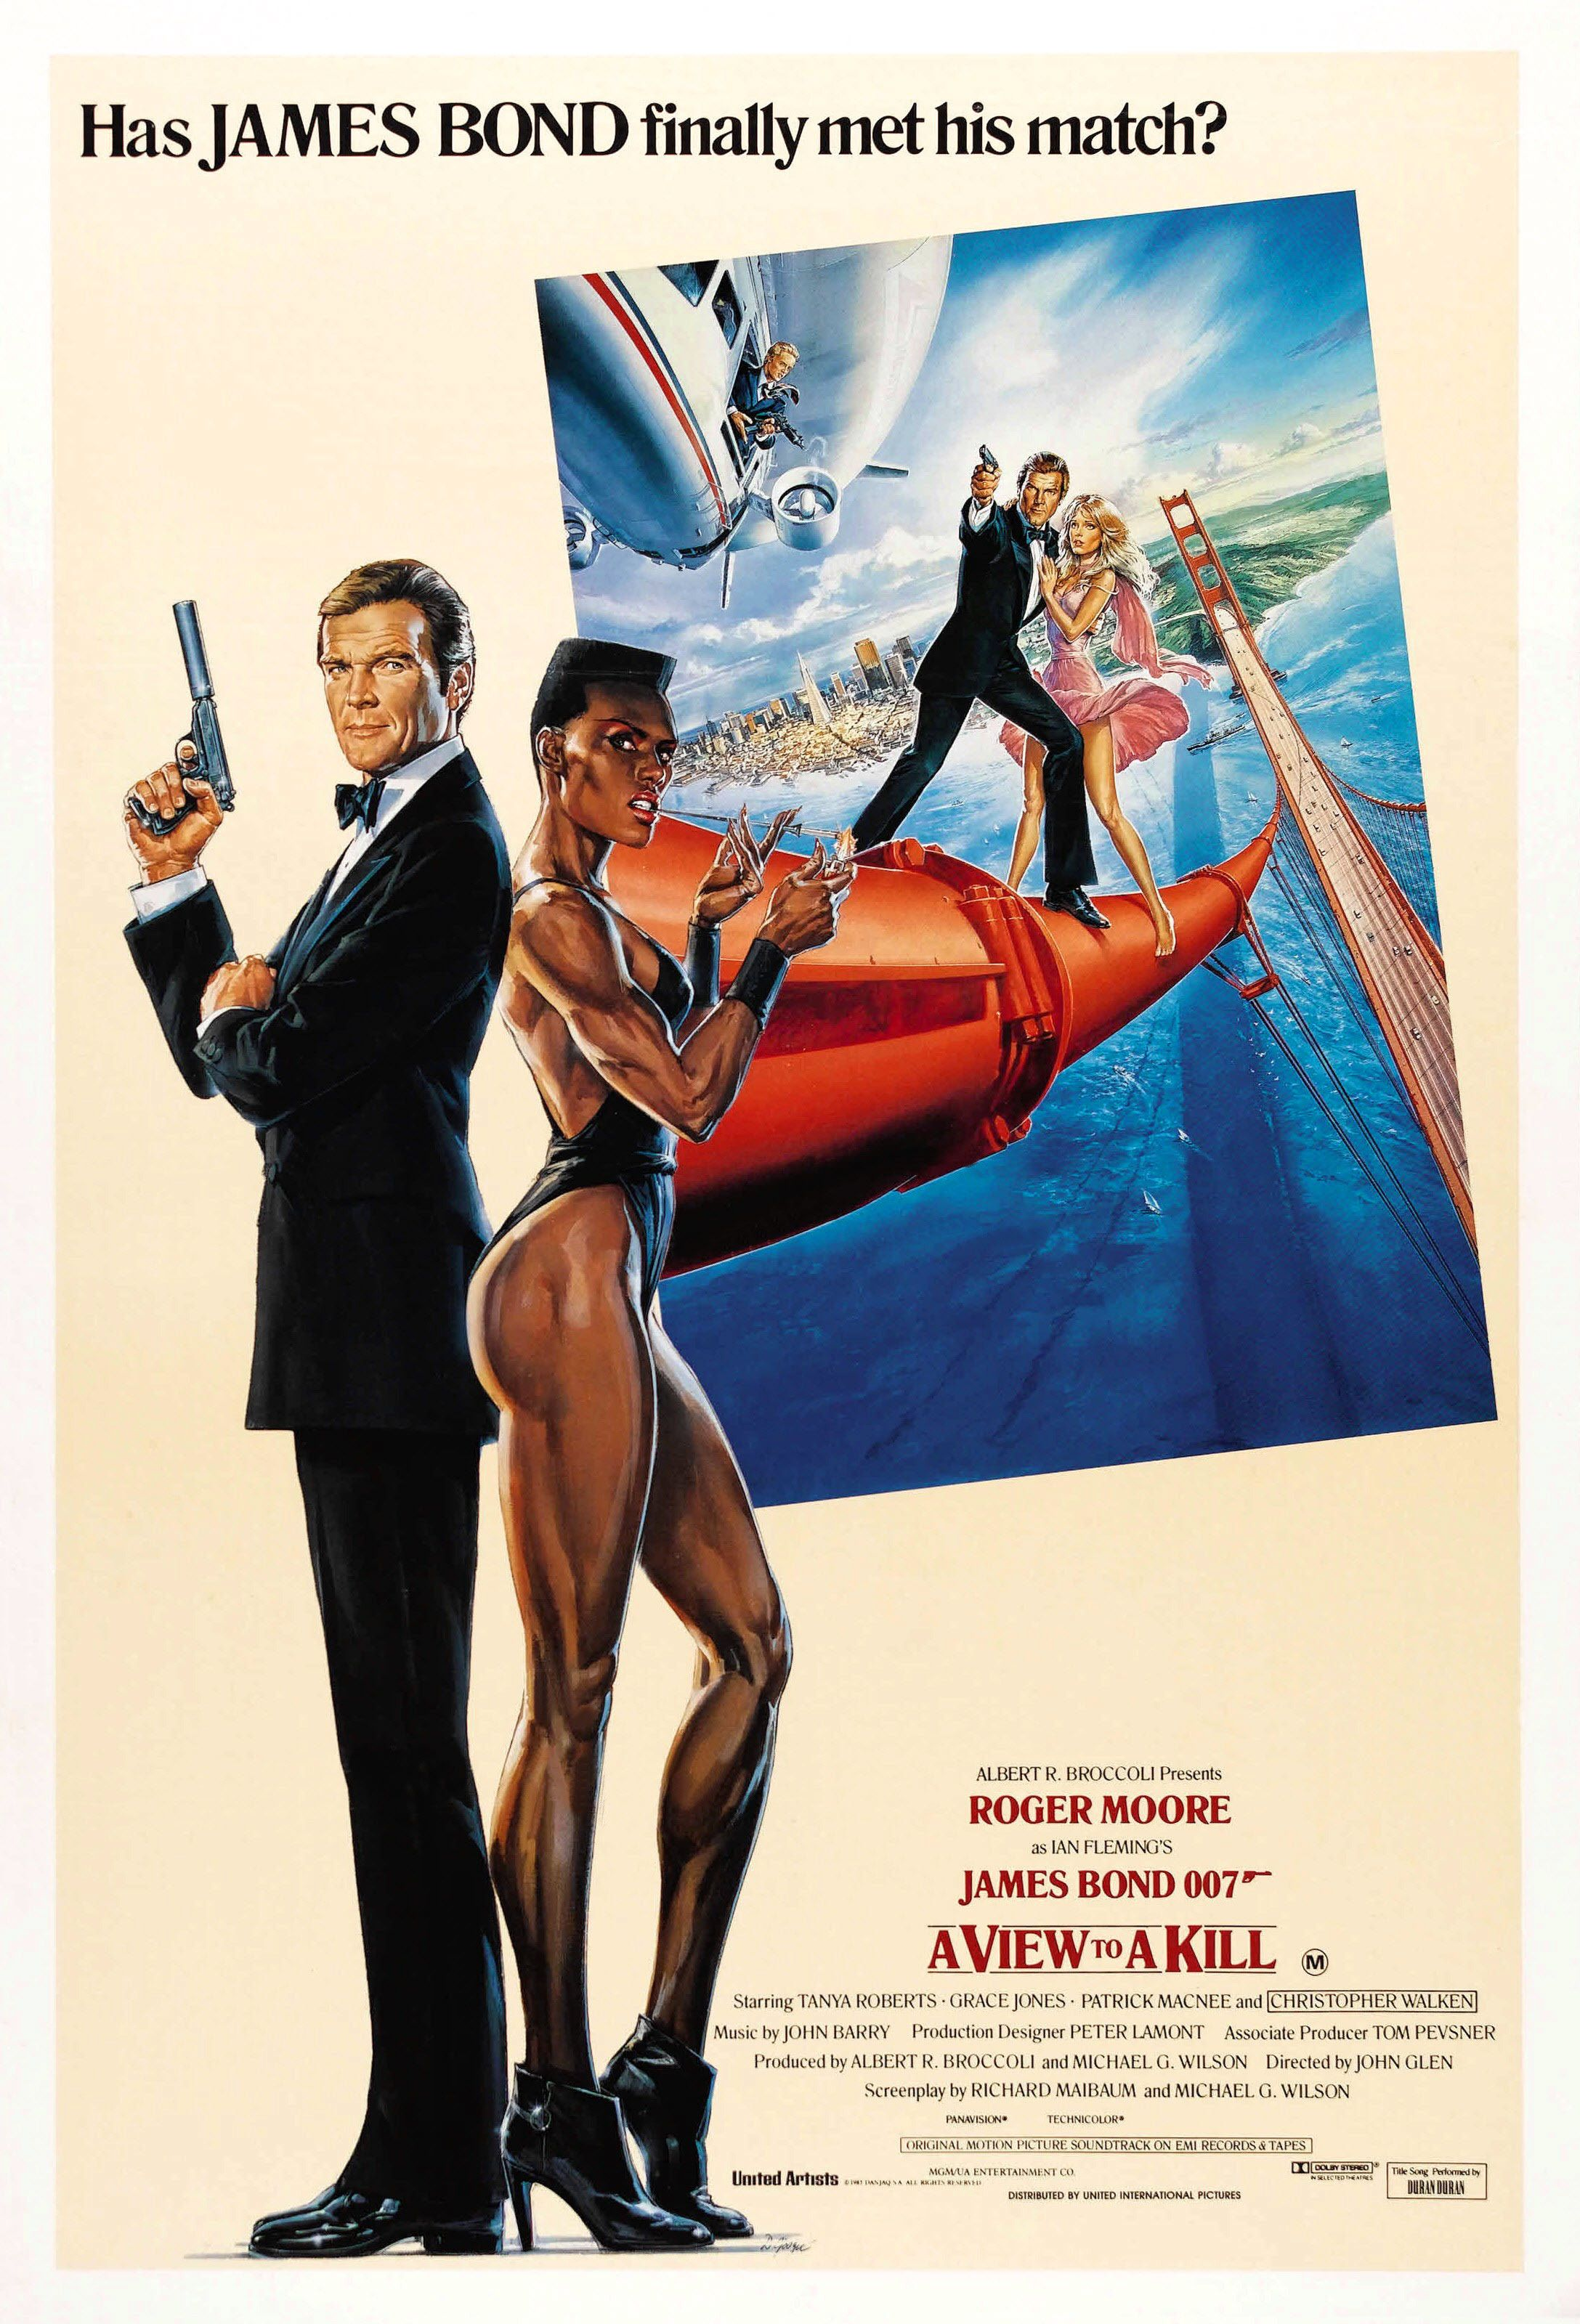 A View To A Kill 1985 James Bond Movie Posters James Bond